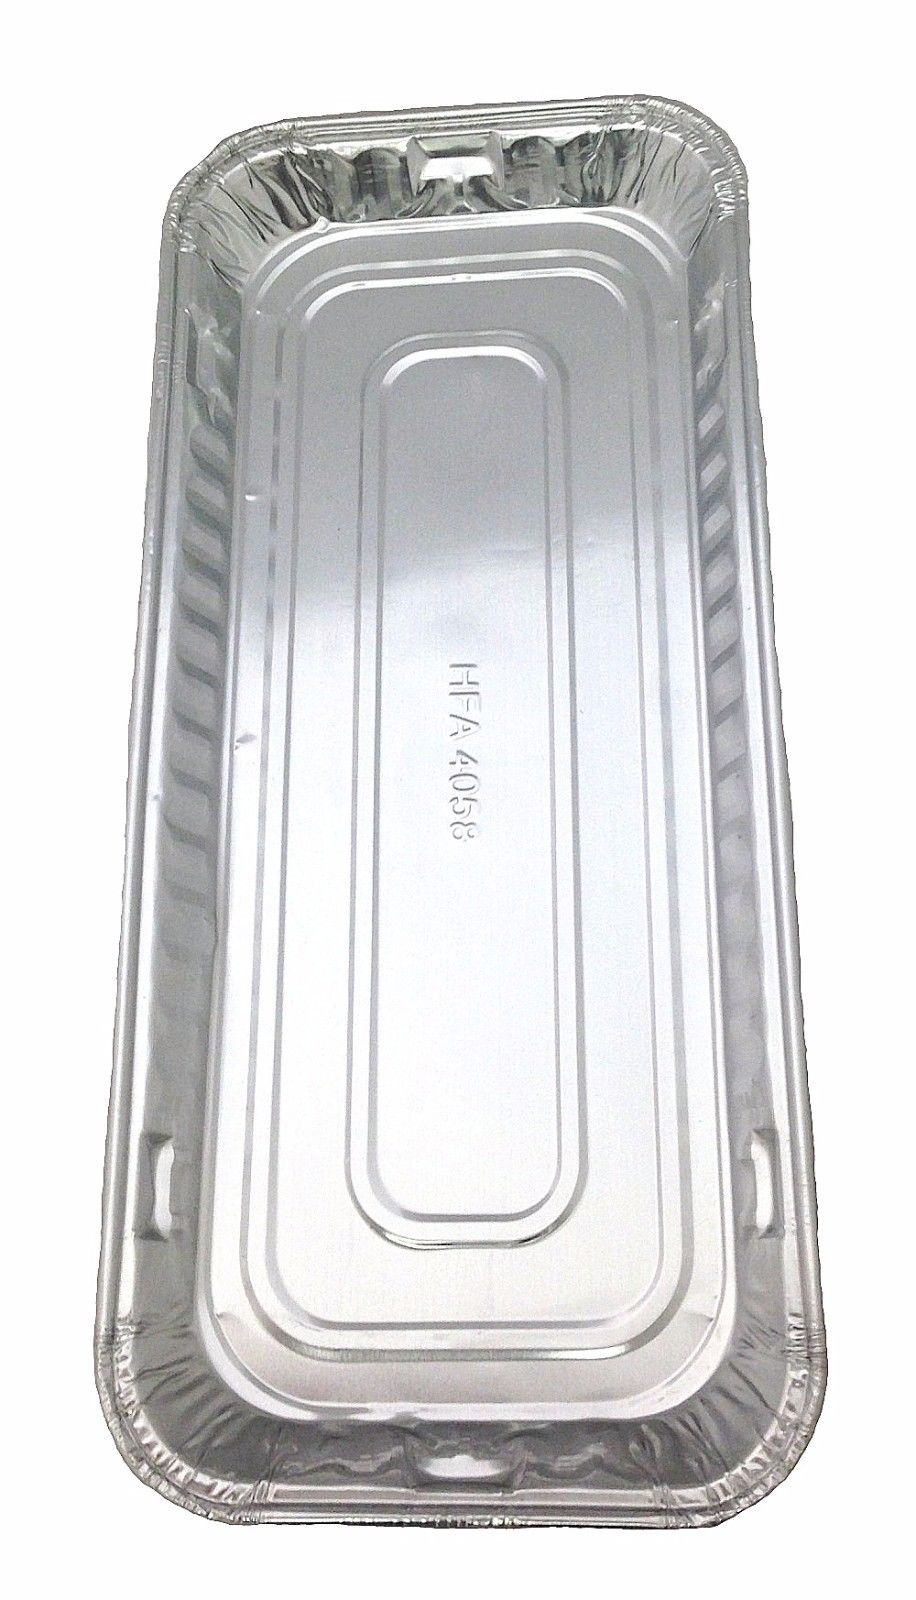 "Handi-Foil 11"" x 5"" Oblong Danish Pan 50/PK"